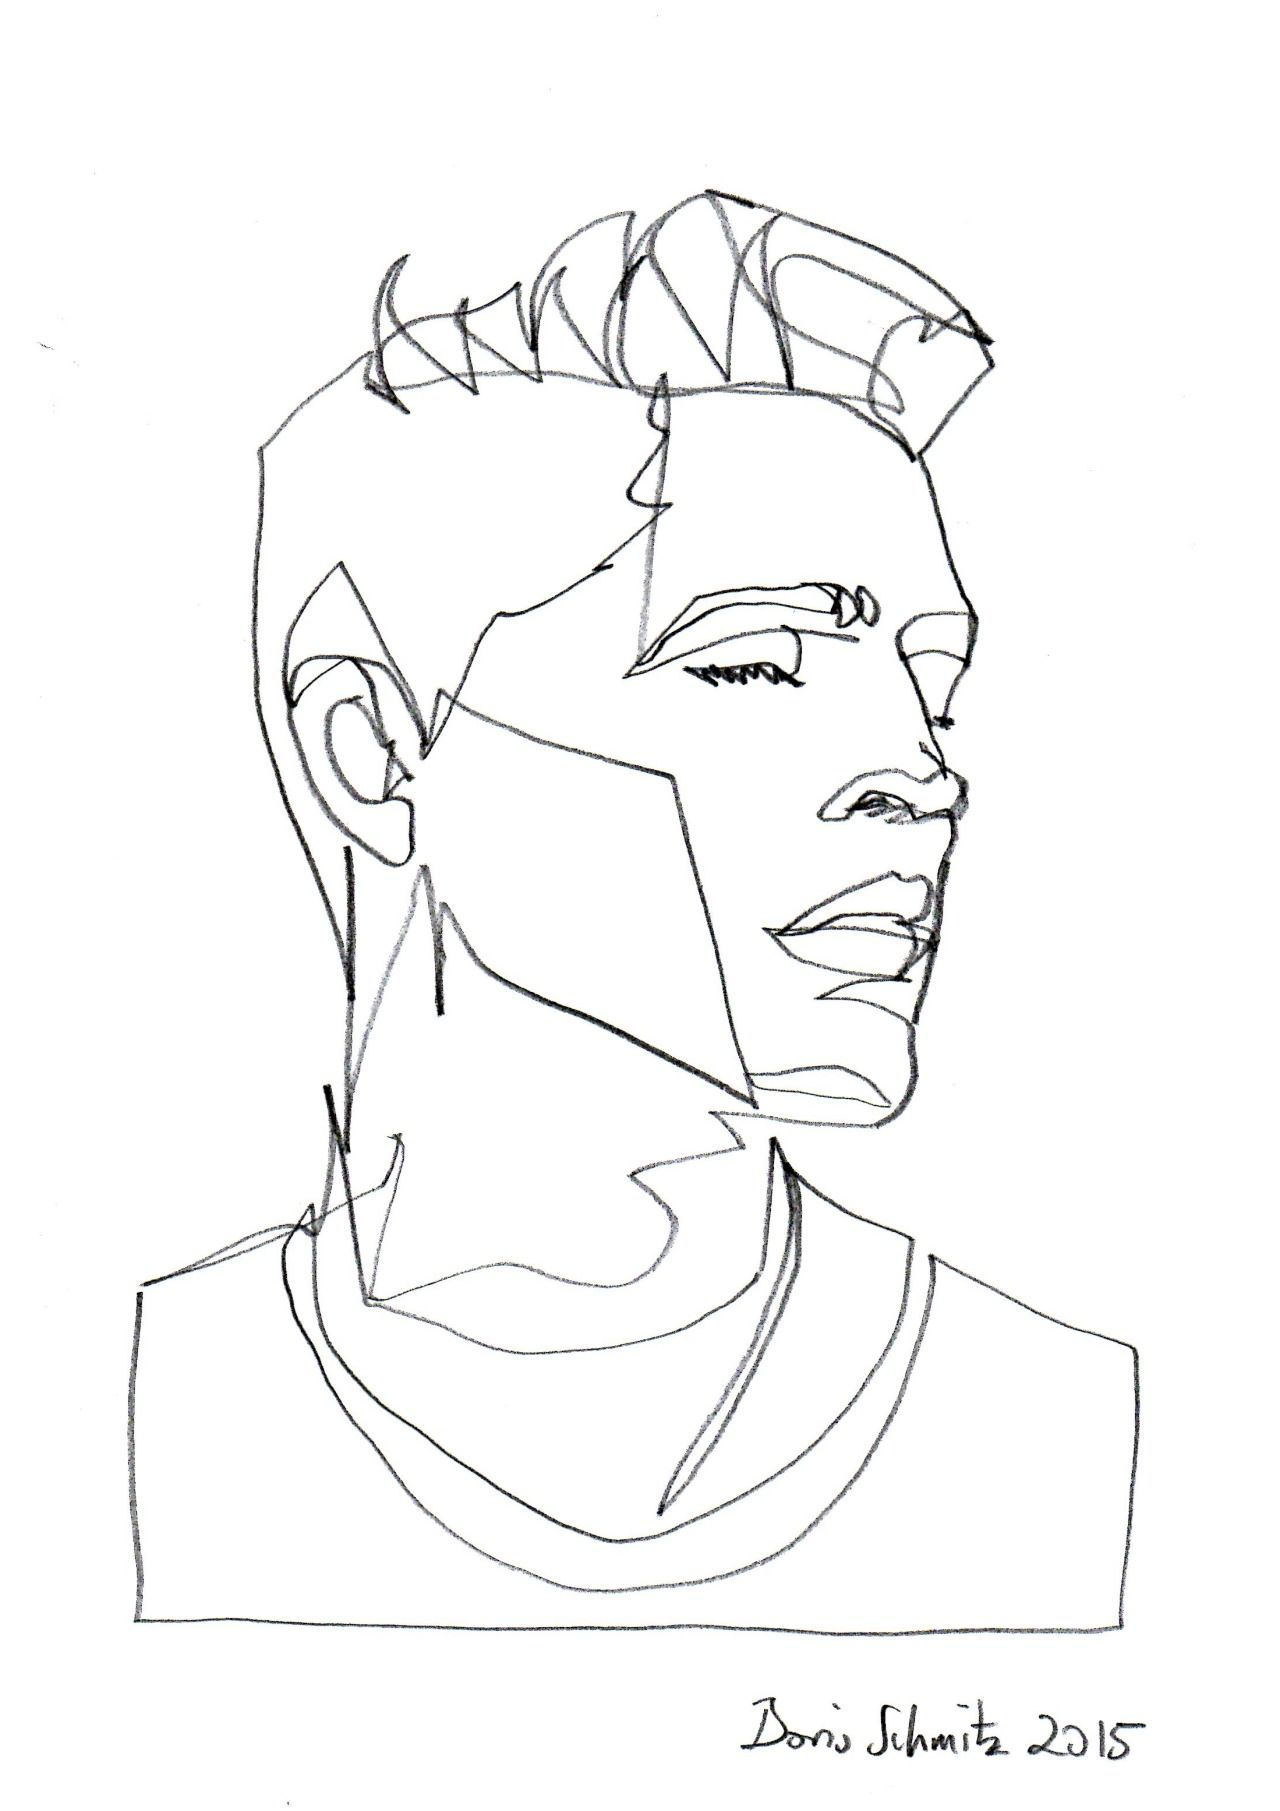 Line Drawing Artist Research : Borisschmitz quot gaze one continuous line drawing by